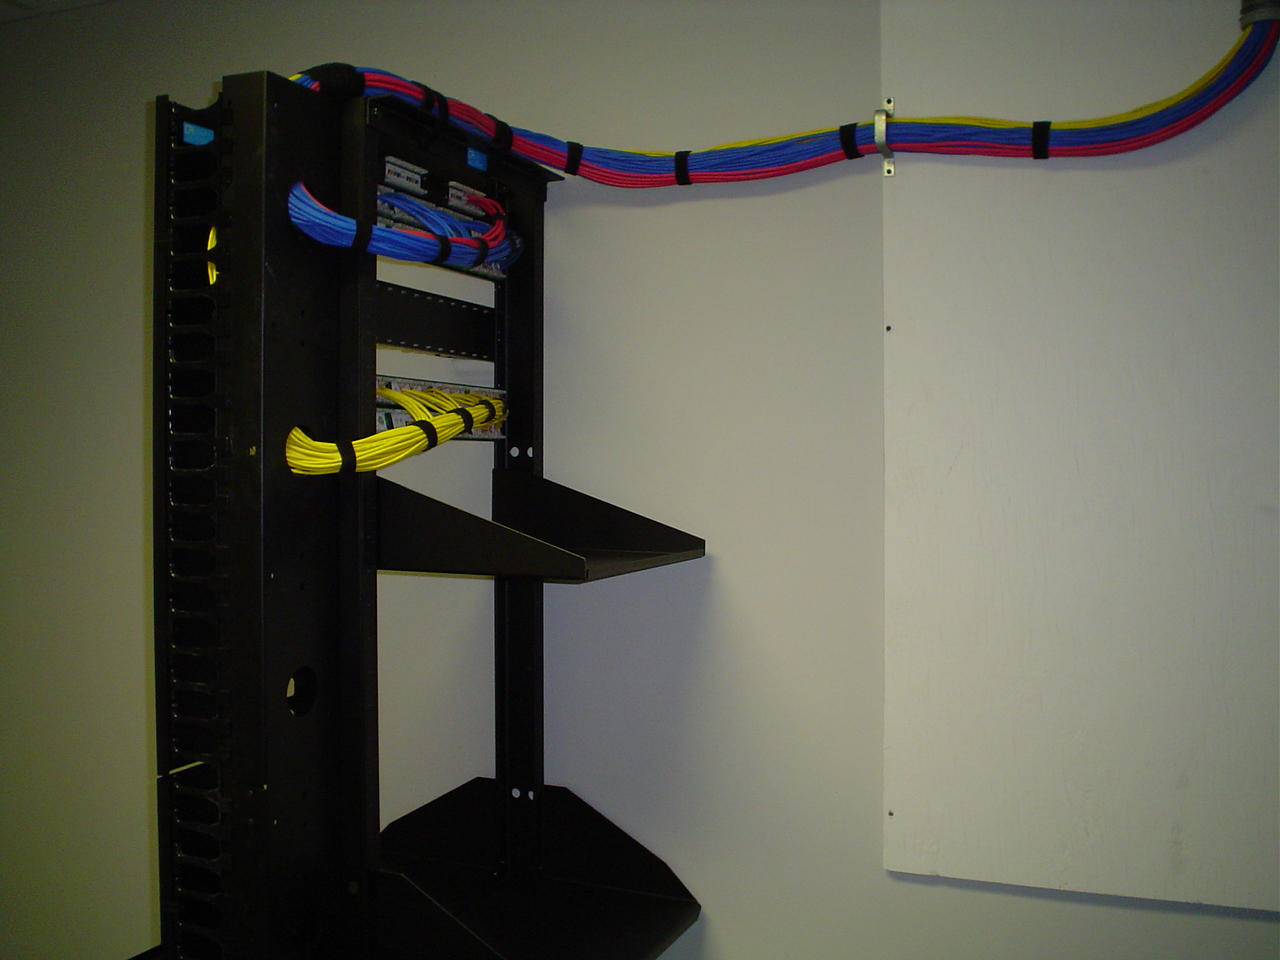 Laba Communications Data Cablingphone System Speakers And Audio Video Room Wiring Shelving Rack Finished Commercial Project